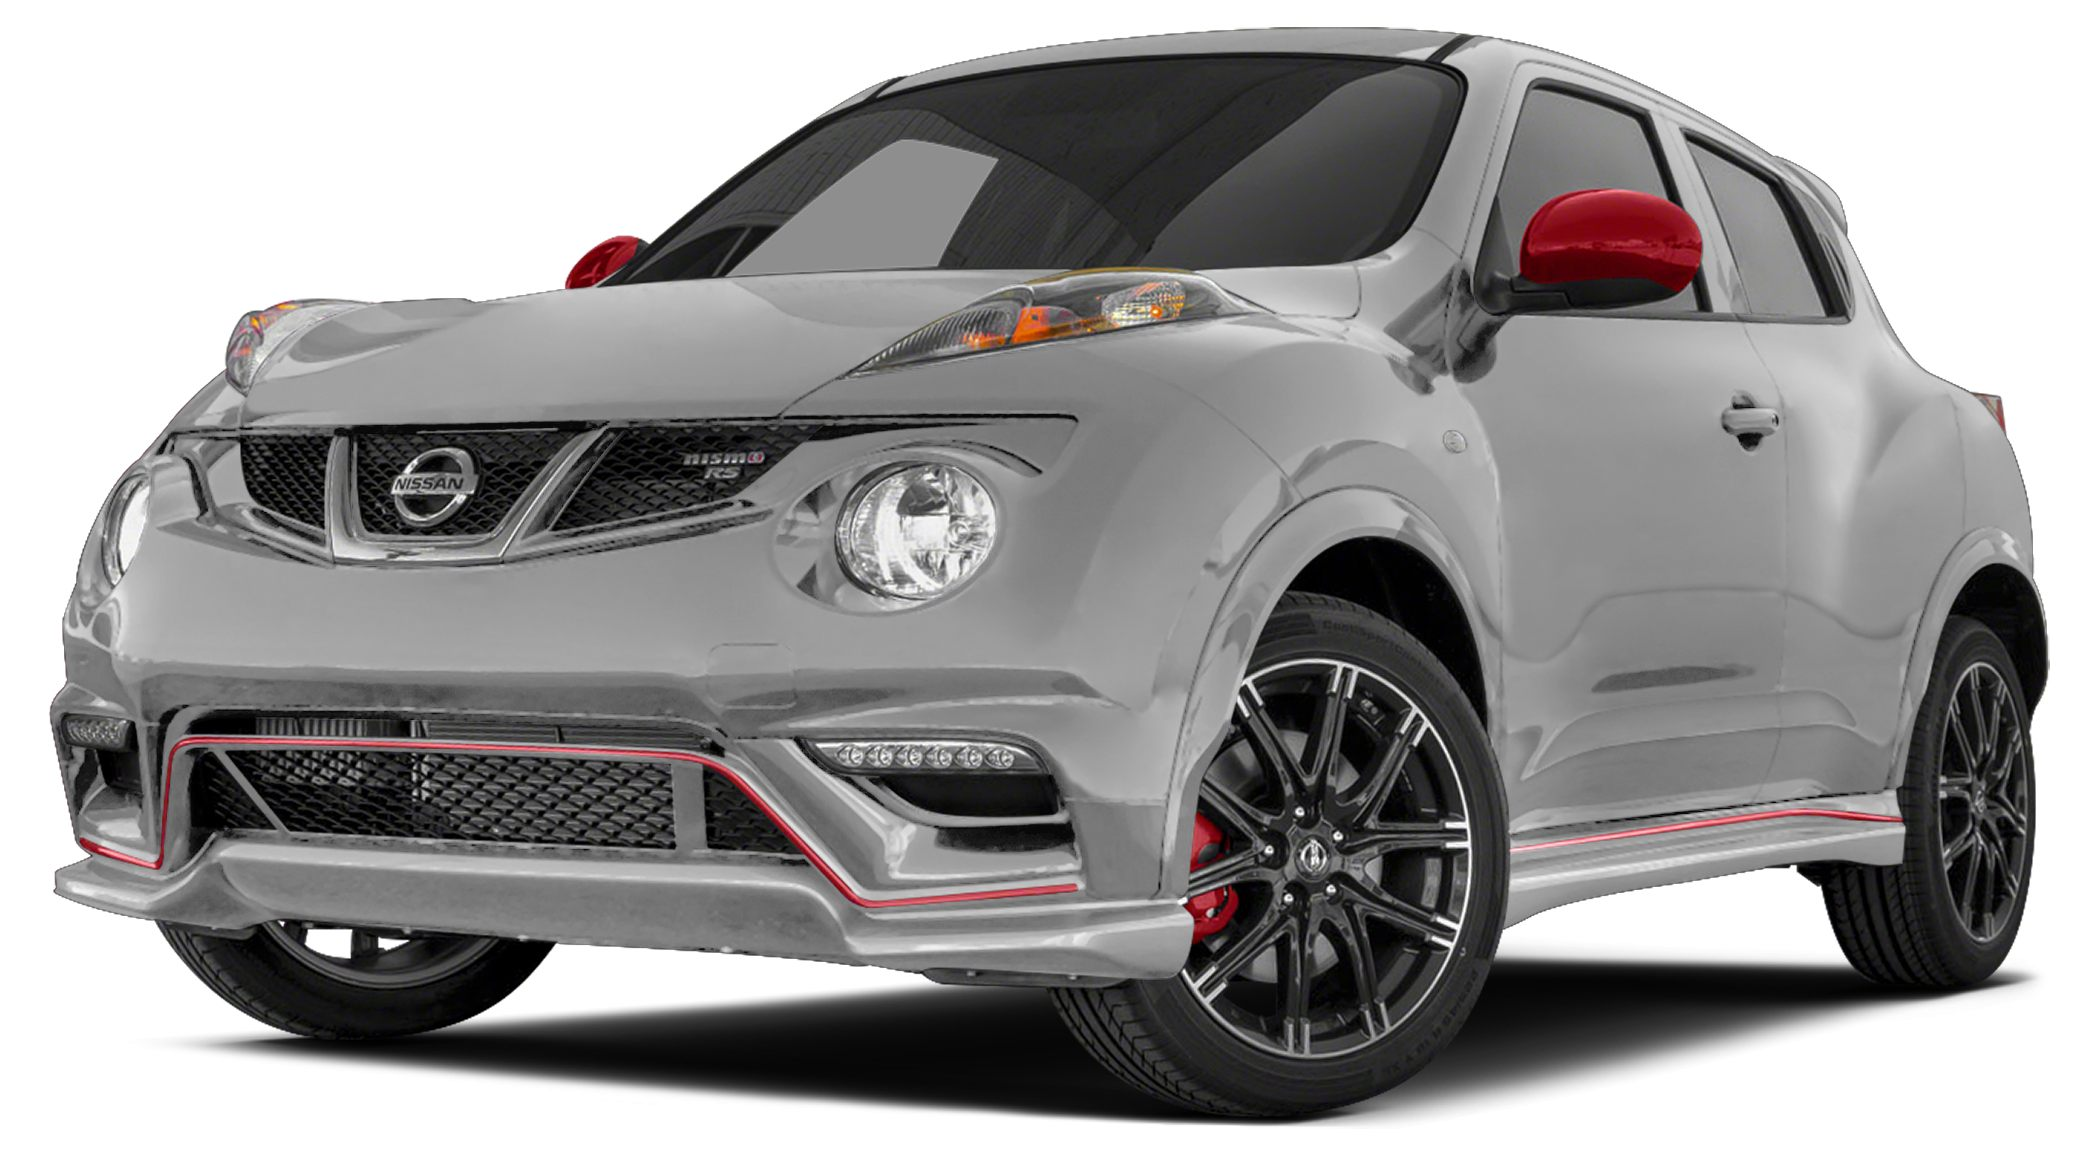 2014 Nissan Juke NISMO RS Recent Arrival AWD WARRANTY FOREVER included at NO EXTRA COST See